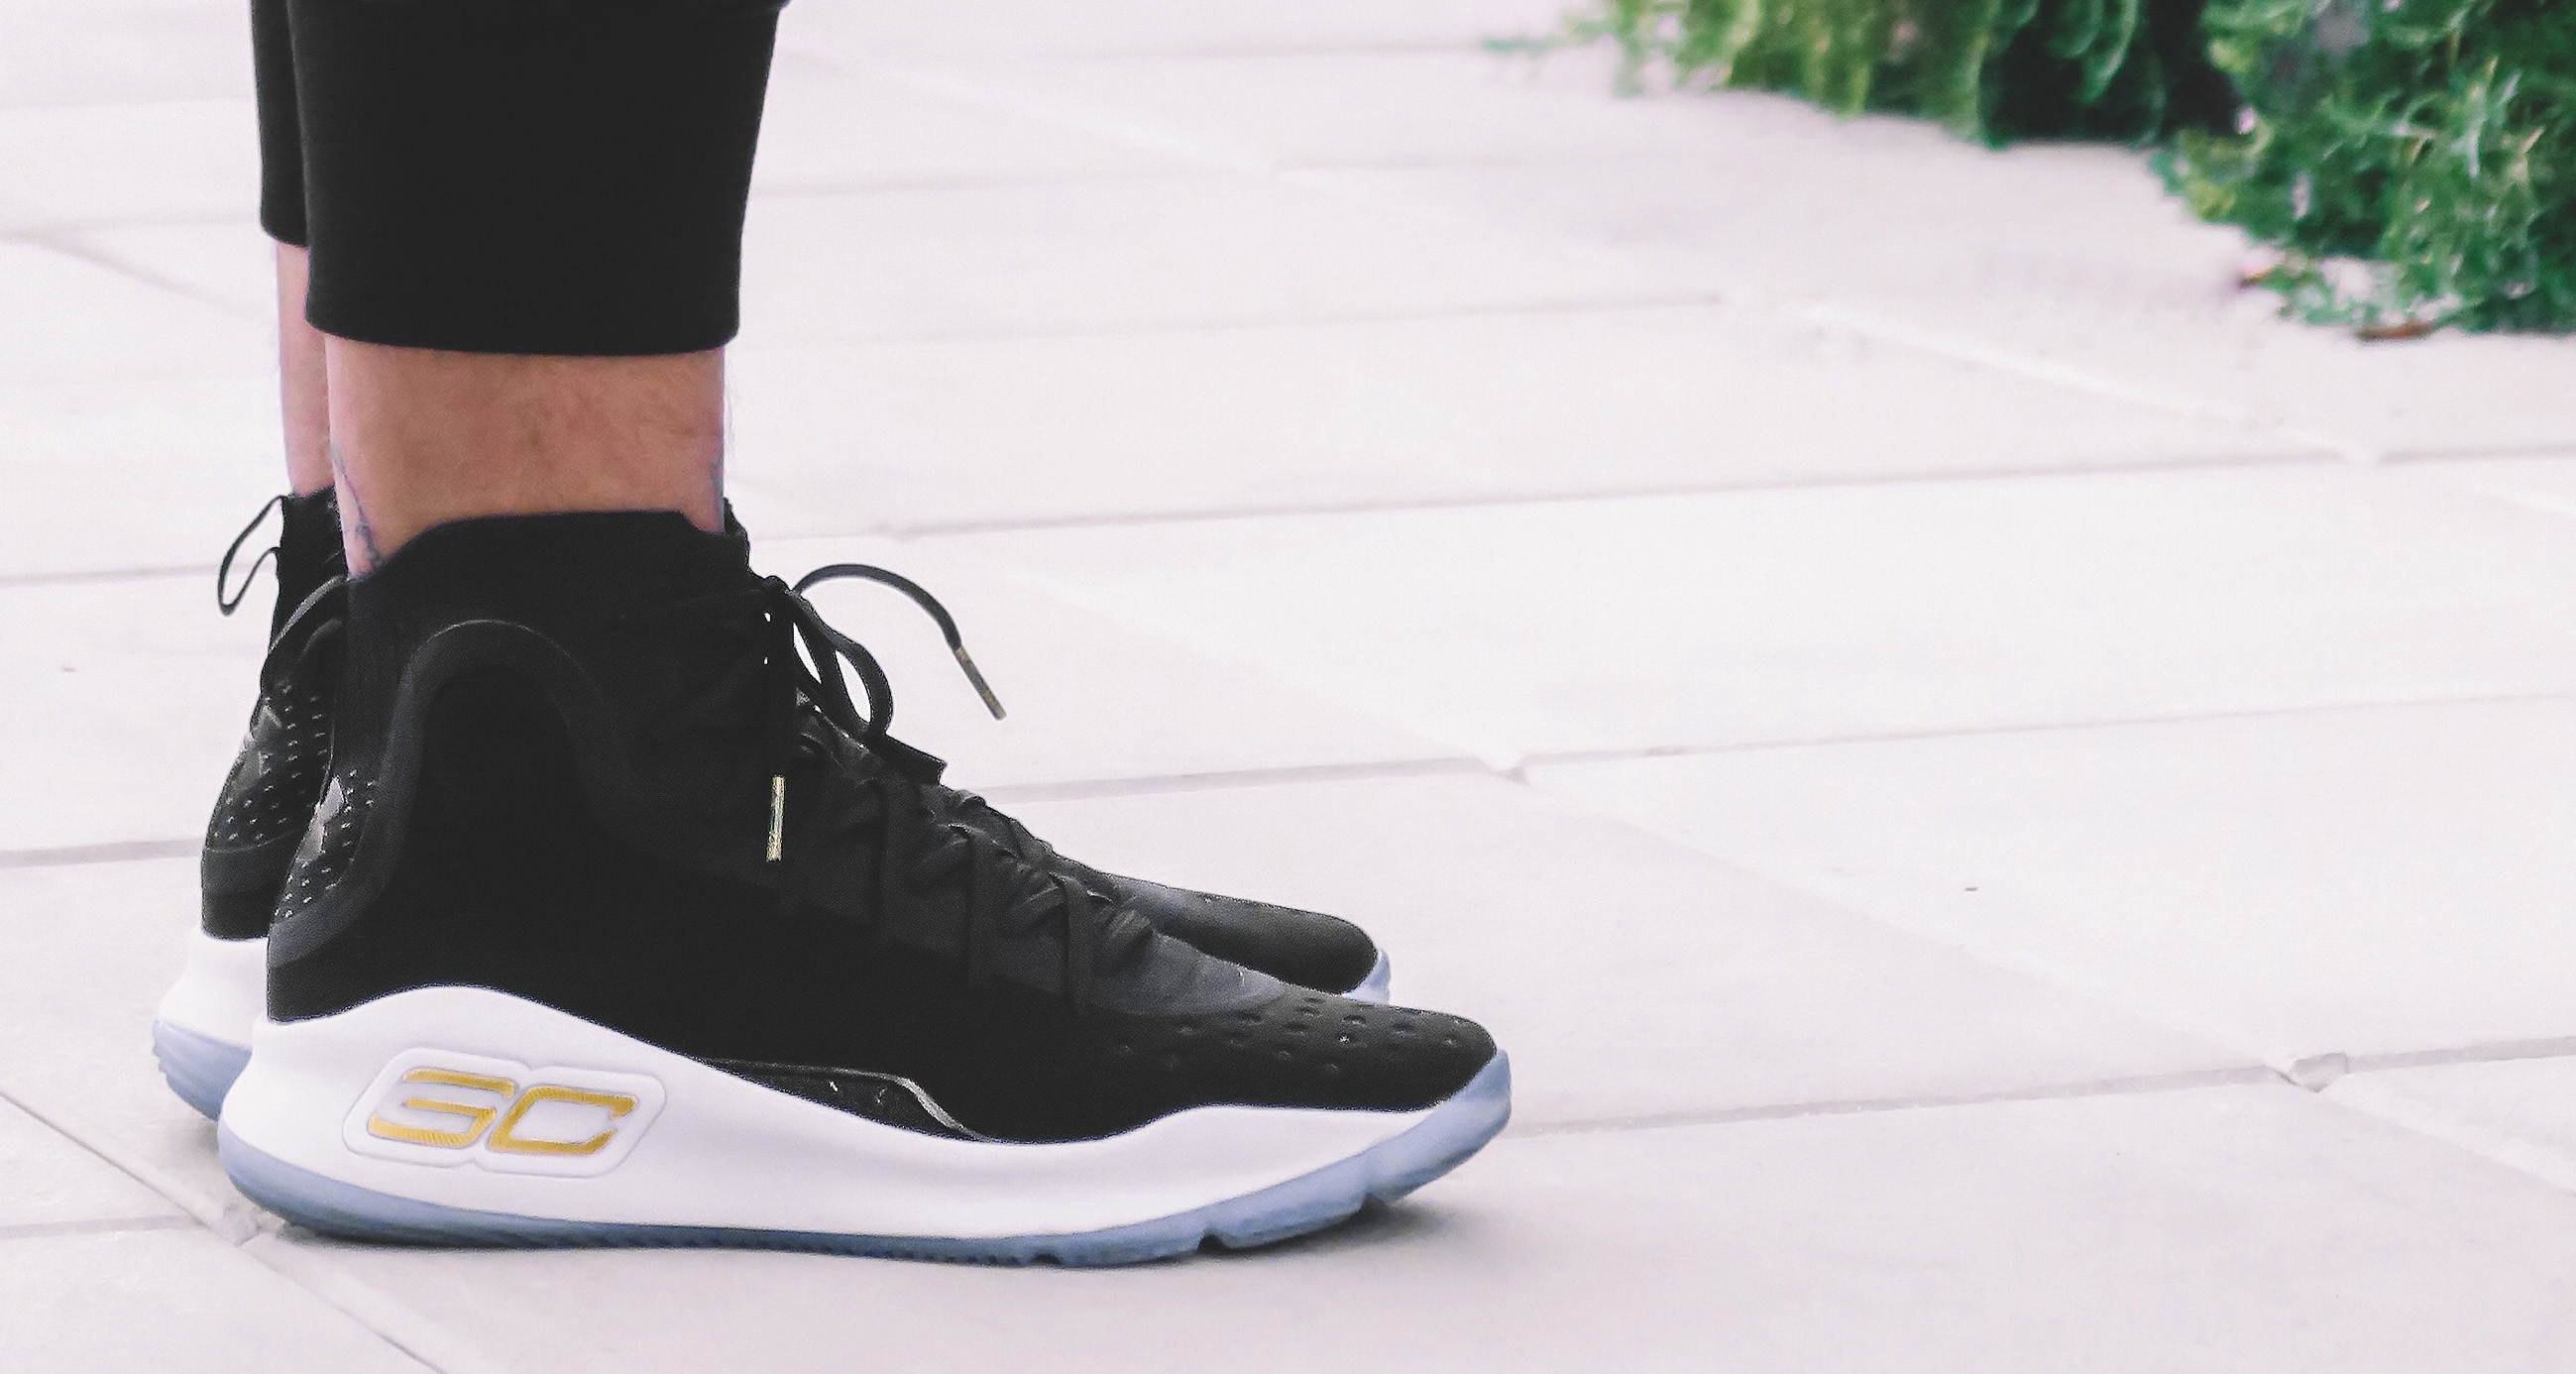 29d9ada5ac0 An On-Foot Look at the Under Armour Curry 4